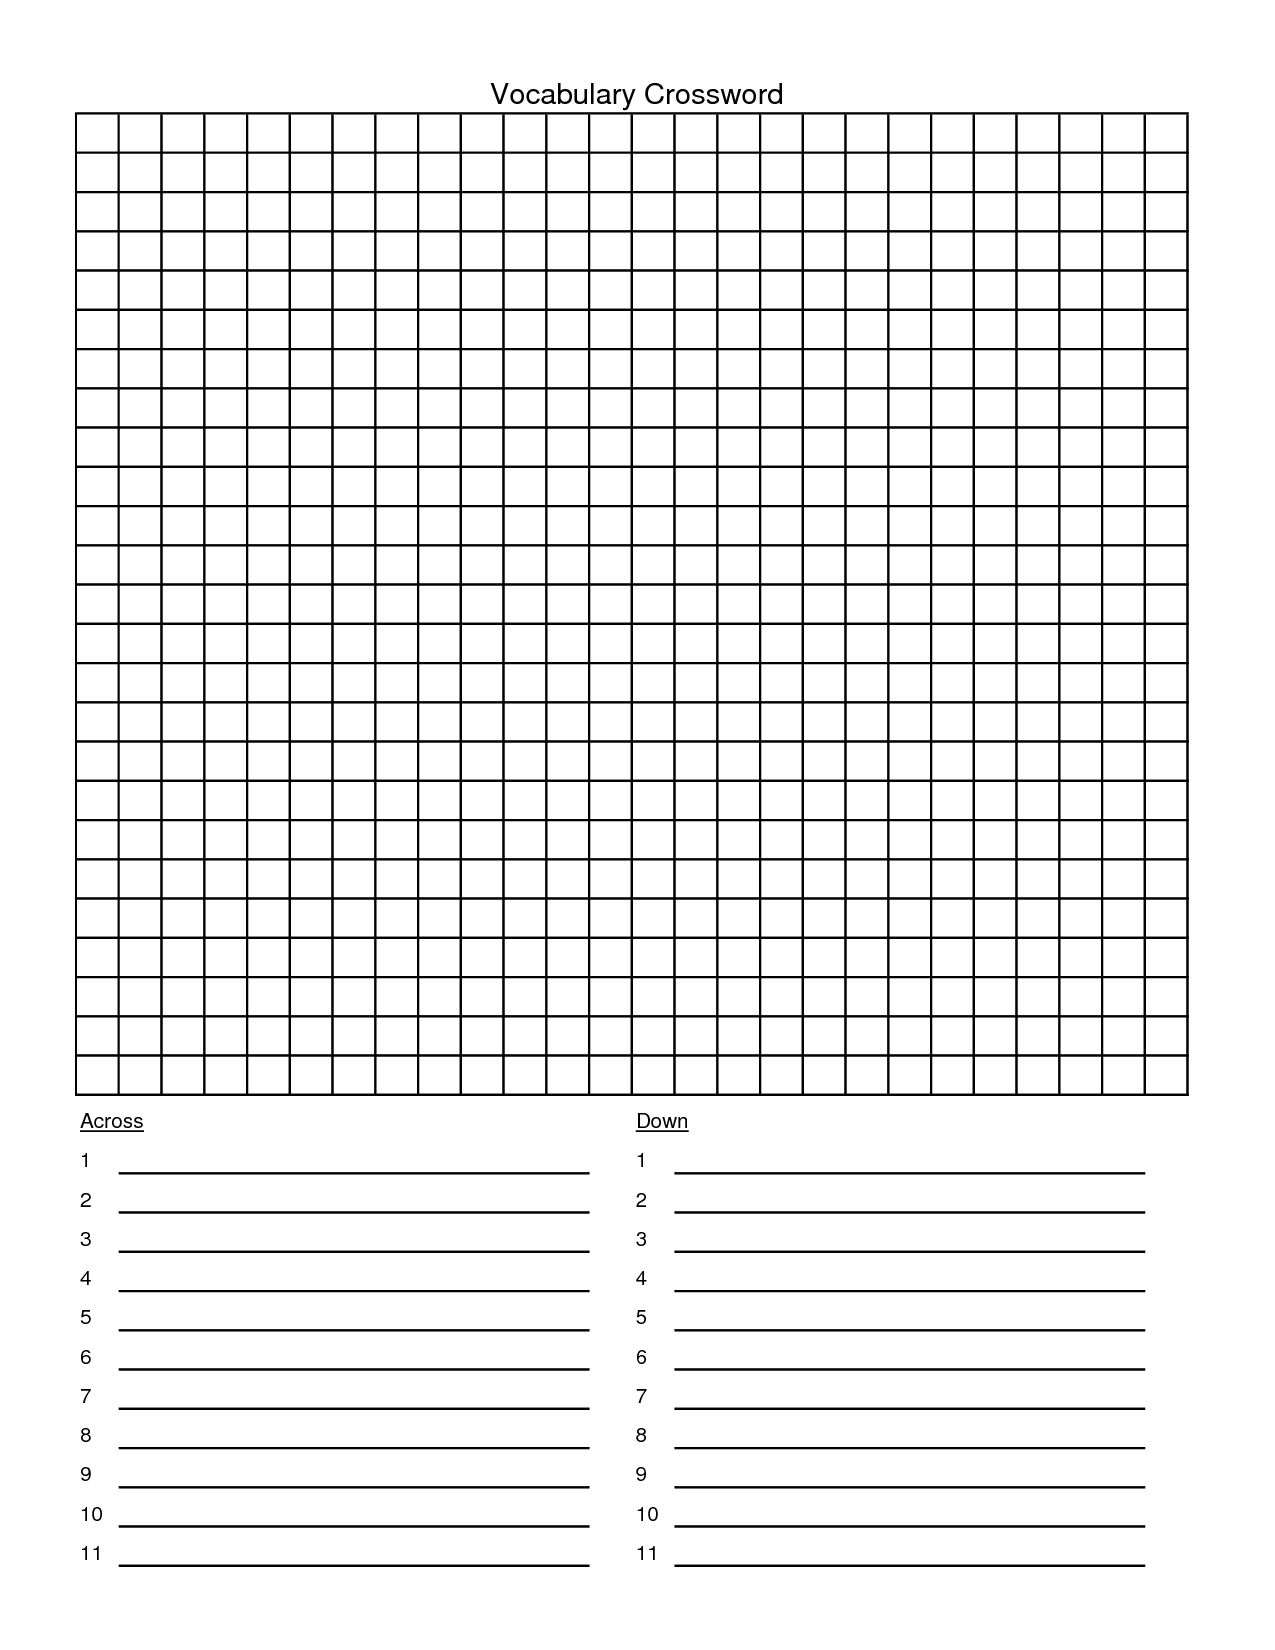 Blank Crossword Template. Blank Crossword Puzzle Clues Template - Printable Blank Crossword Puzzle Grid